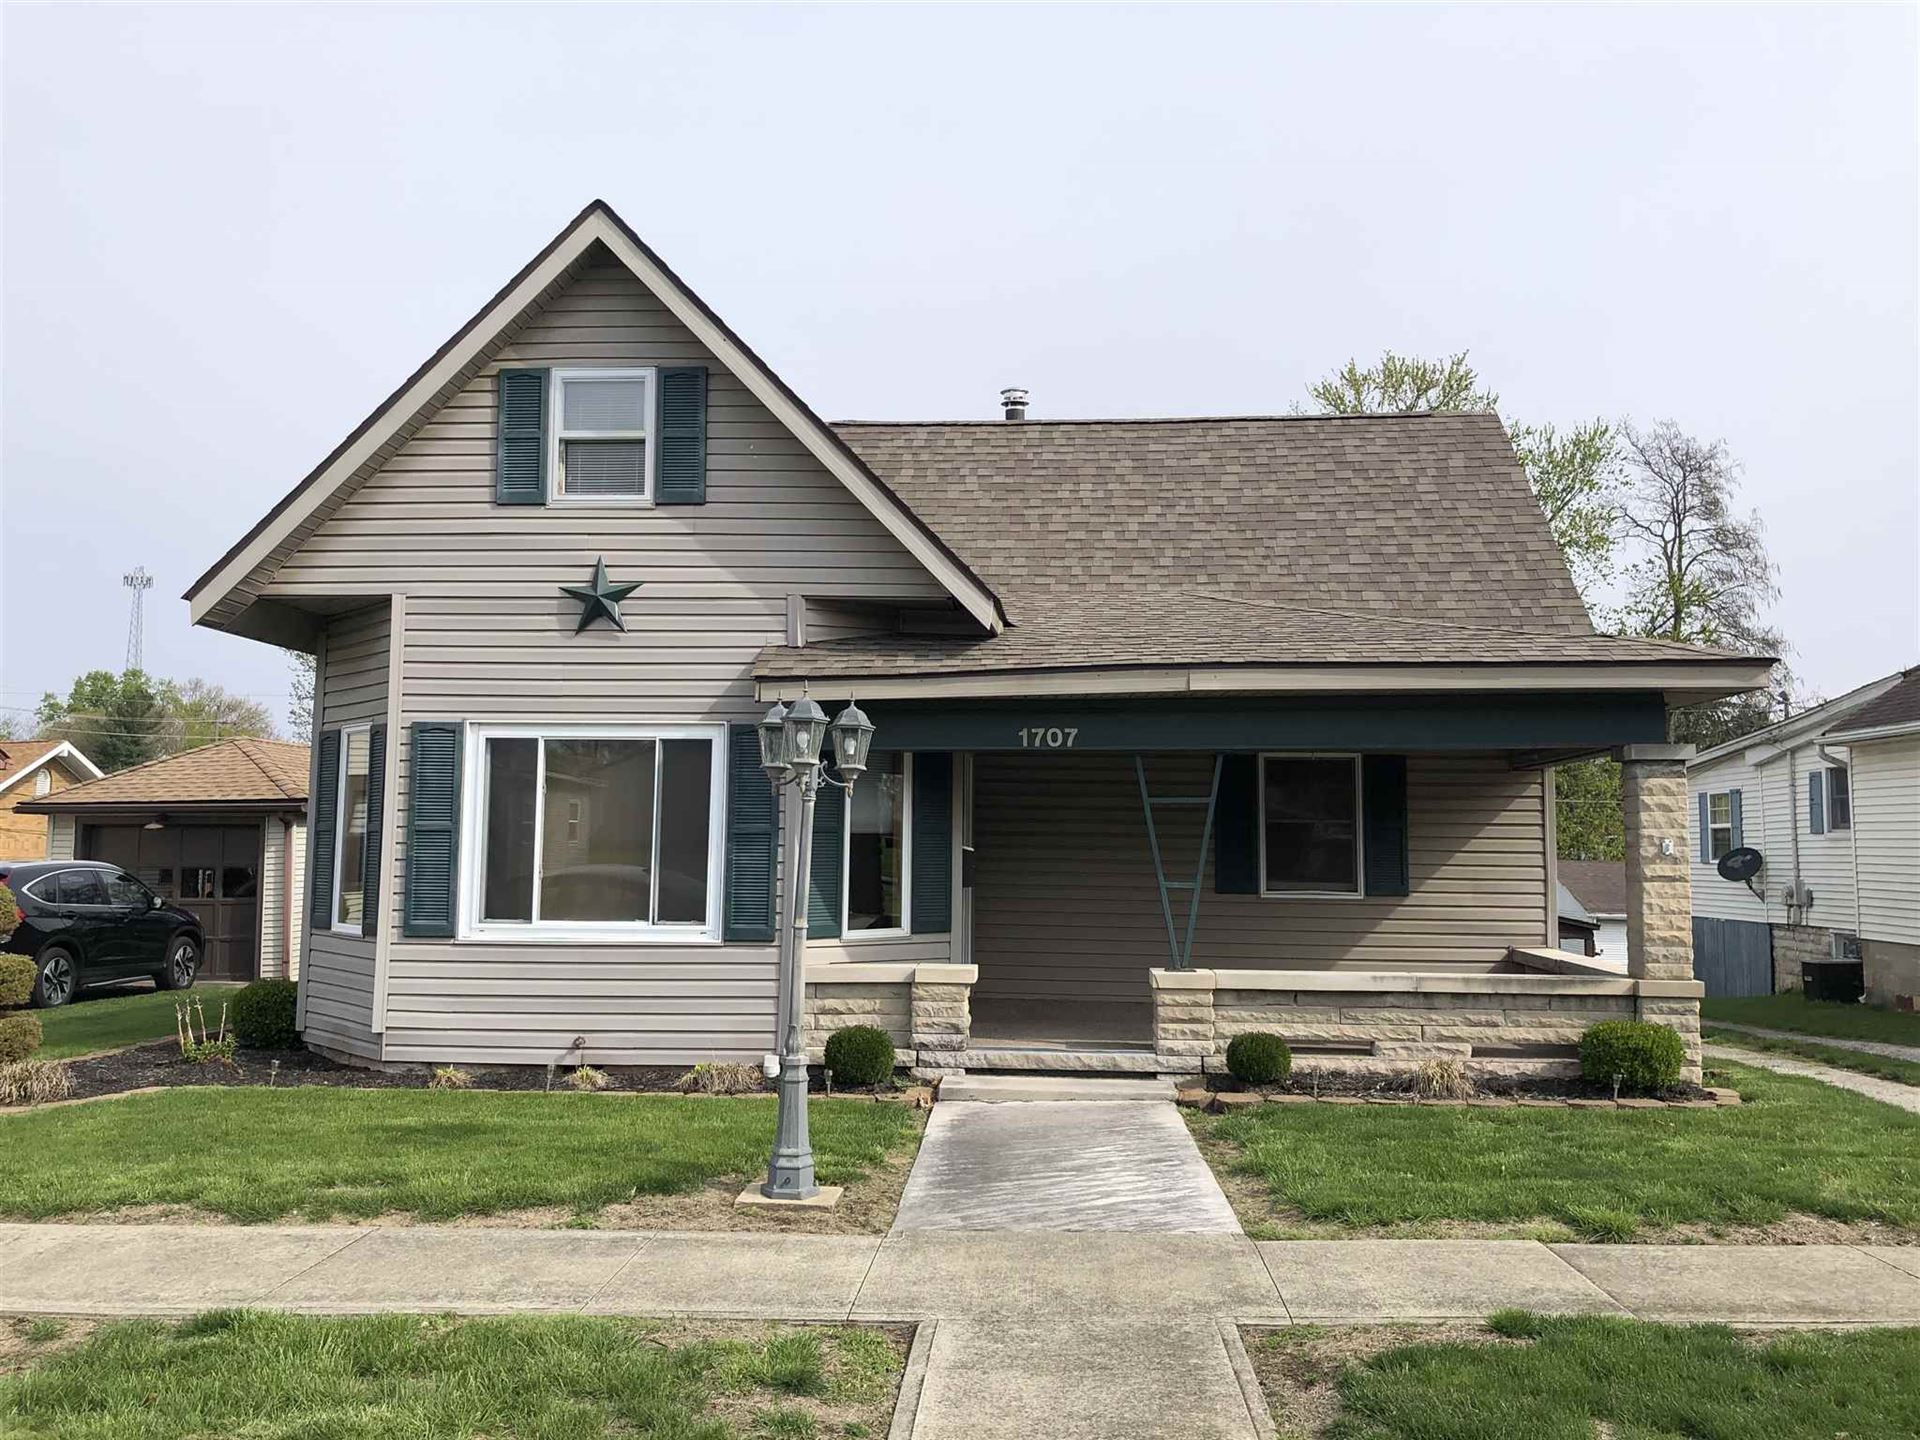 1707 12TH ST, Bedford, IN 47421 - #: 201948570